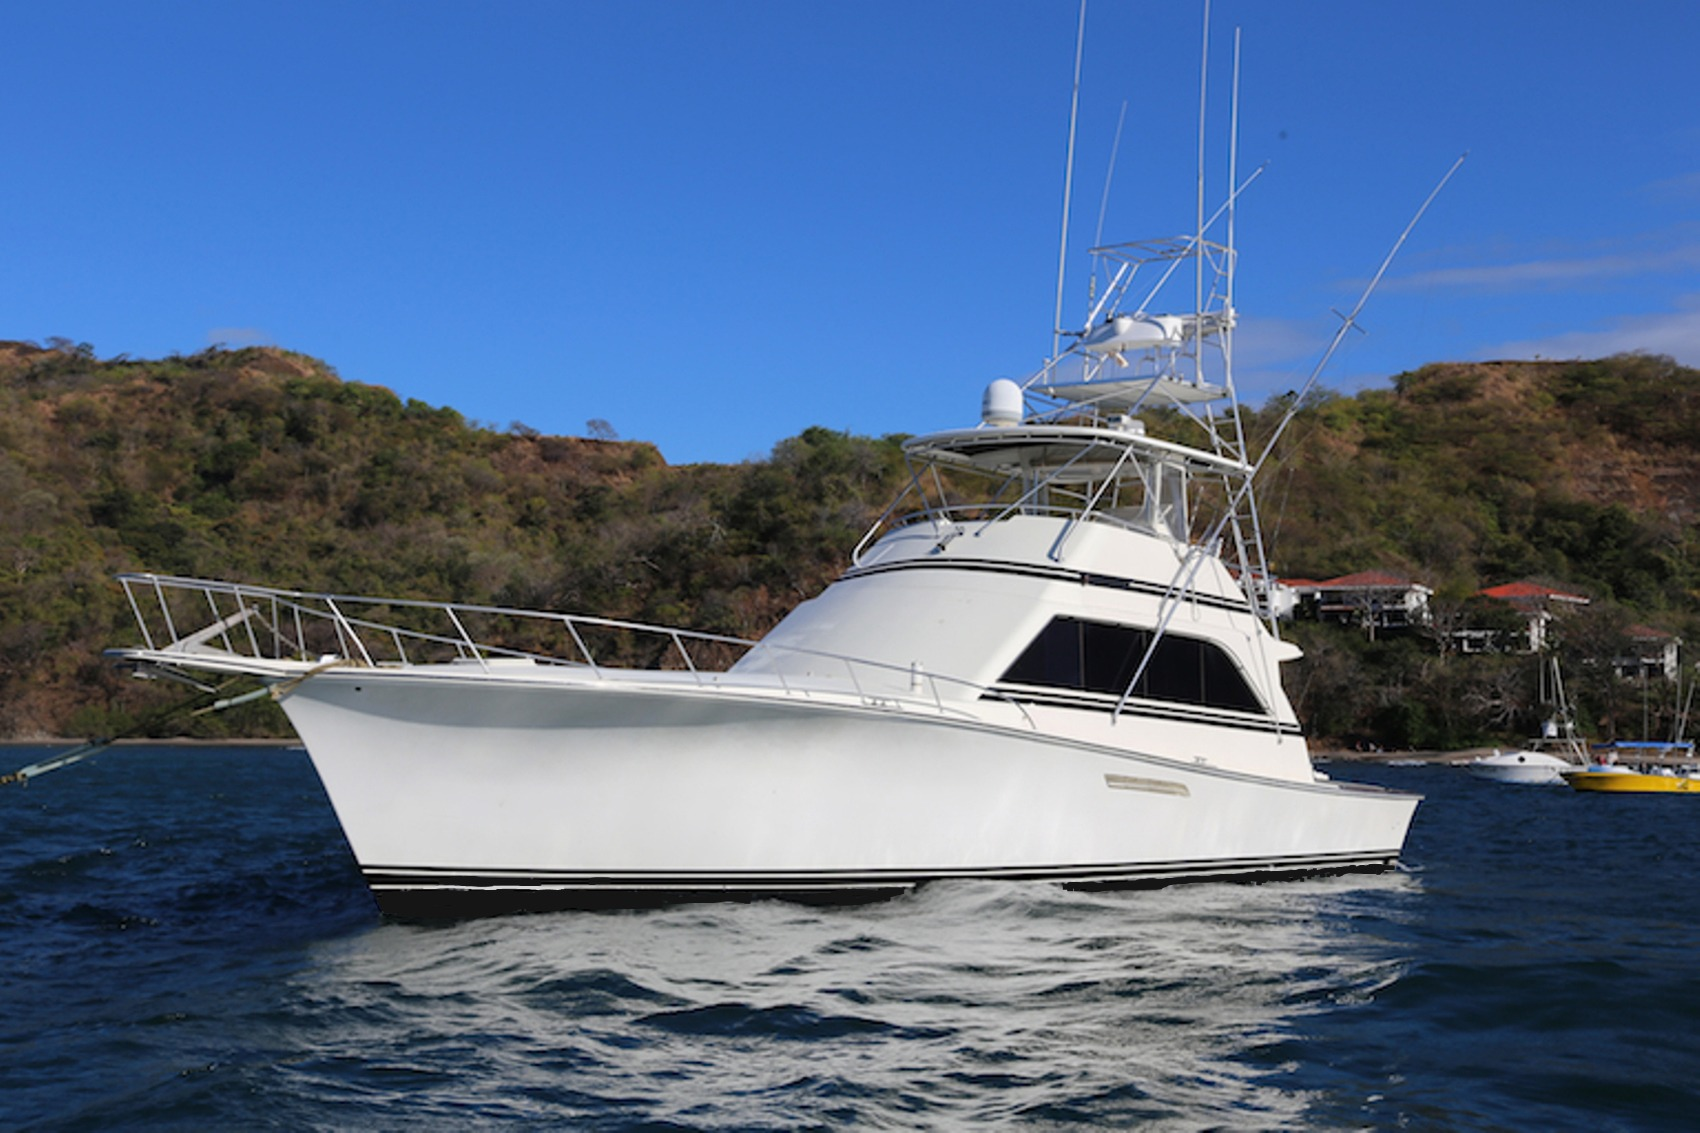 Executive package costa rica fishing charters for Costa rica fishing charters